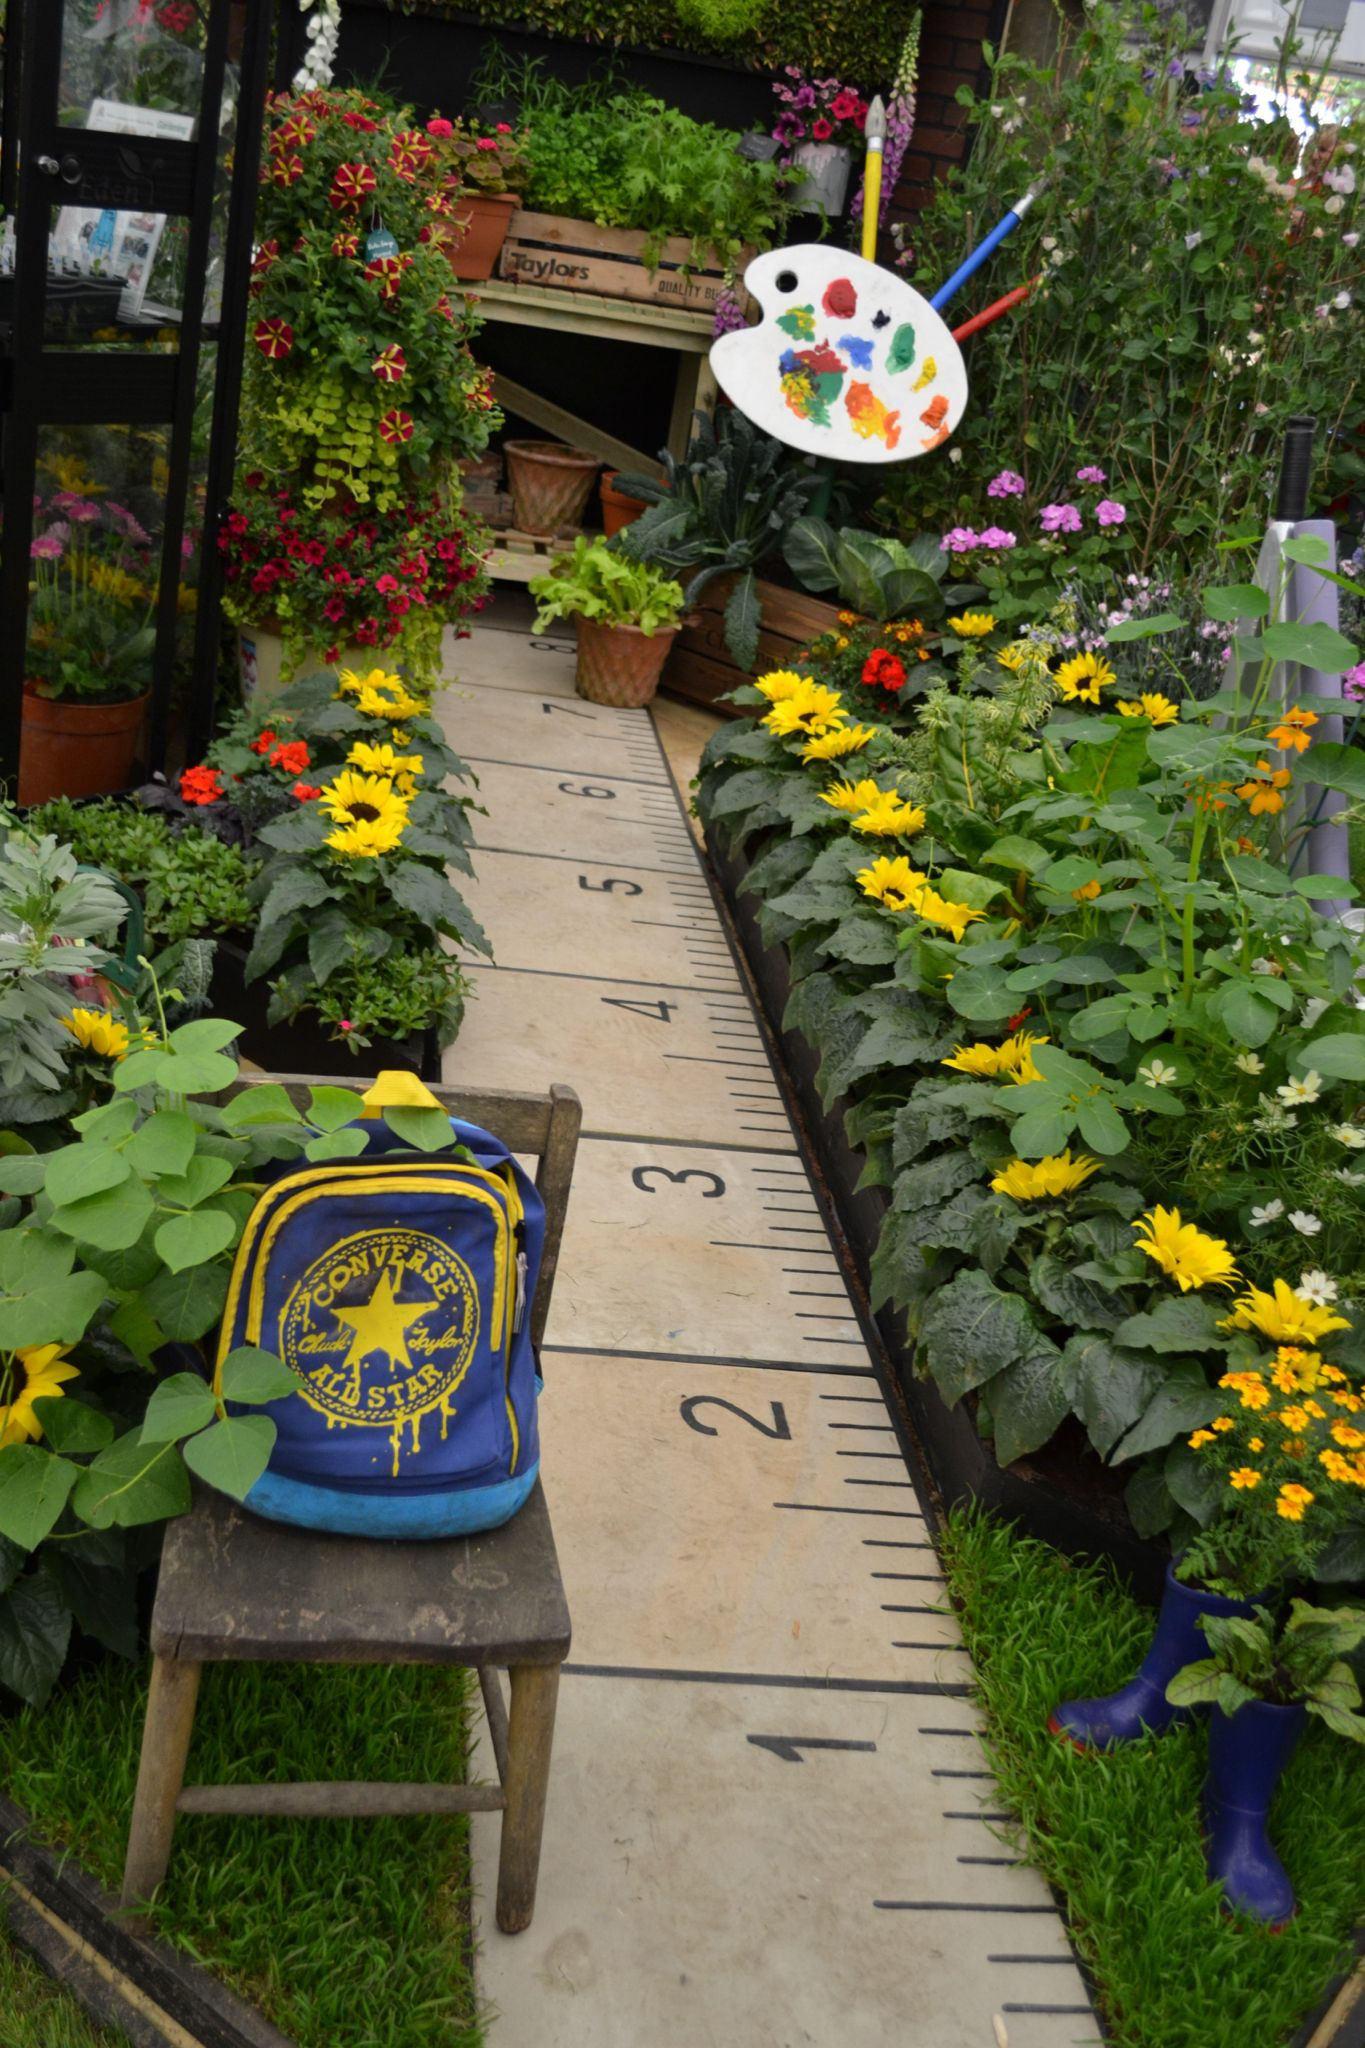 Fun Garden Ideas For Kids ruler footpath lined with sunflowers ideal for kids garden or a